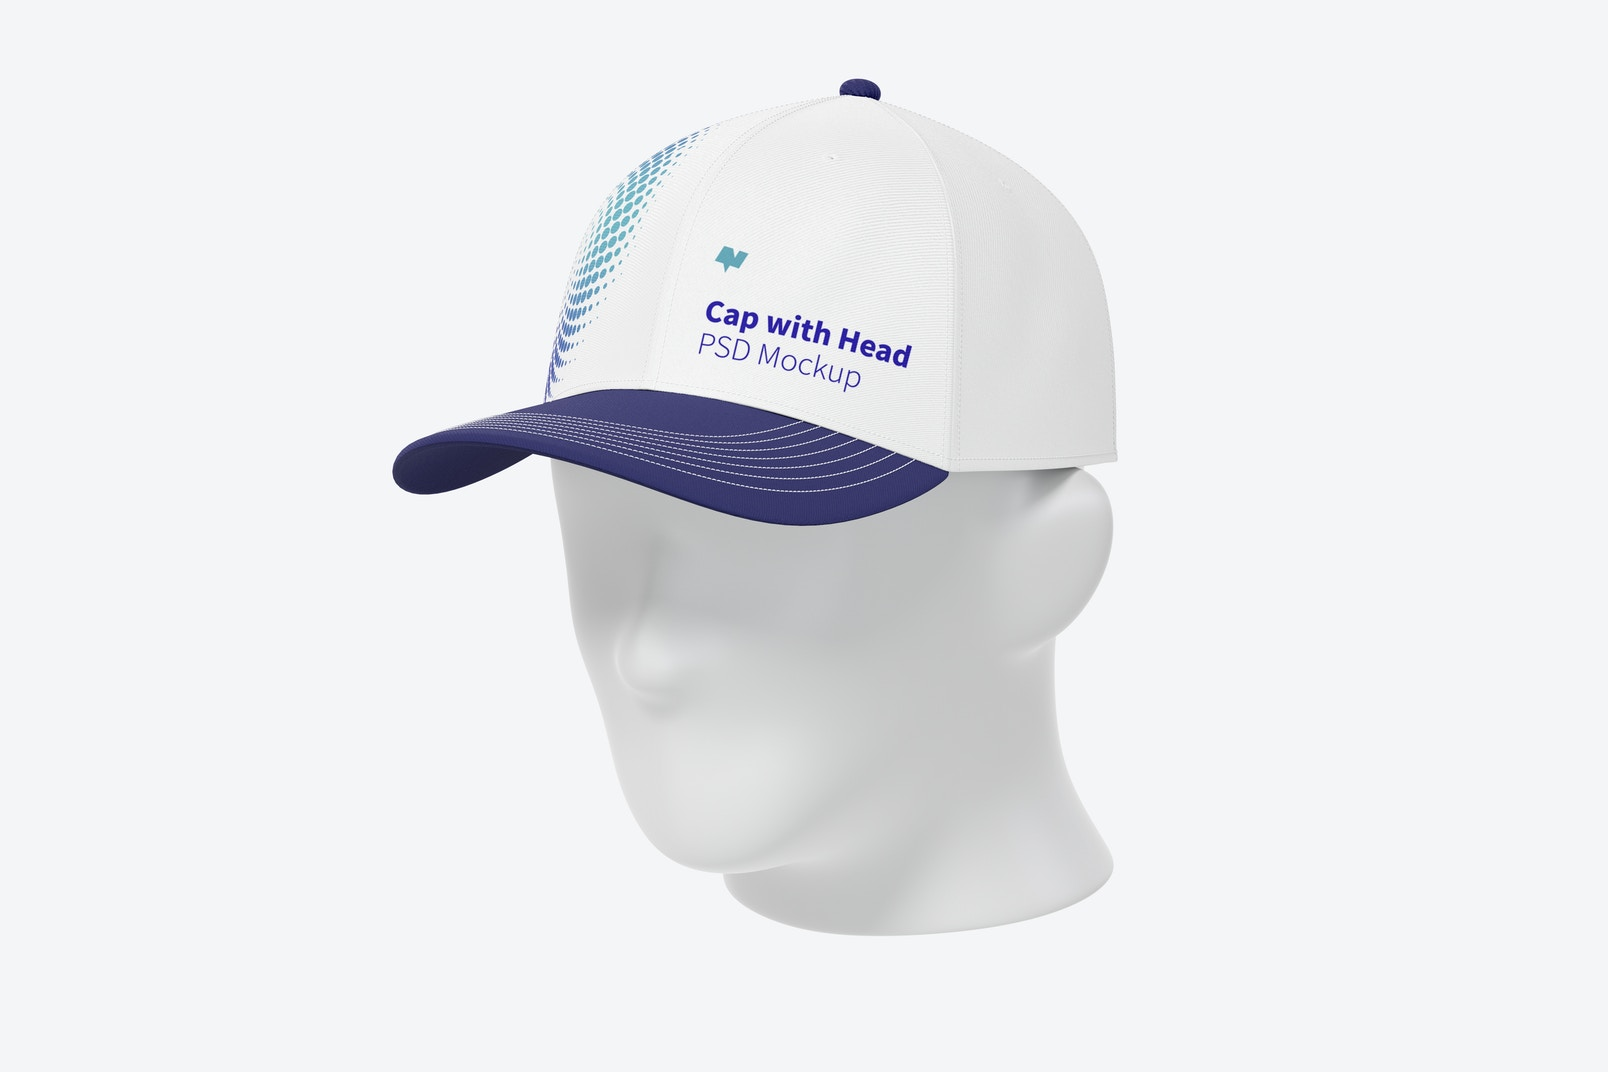 Cap with Head Mockup, 3/4 Front Right View